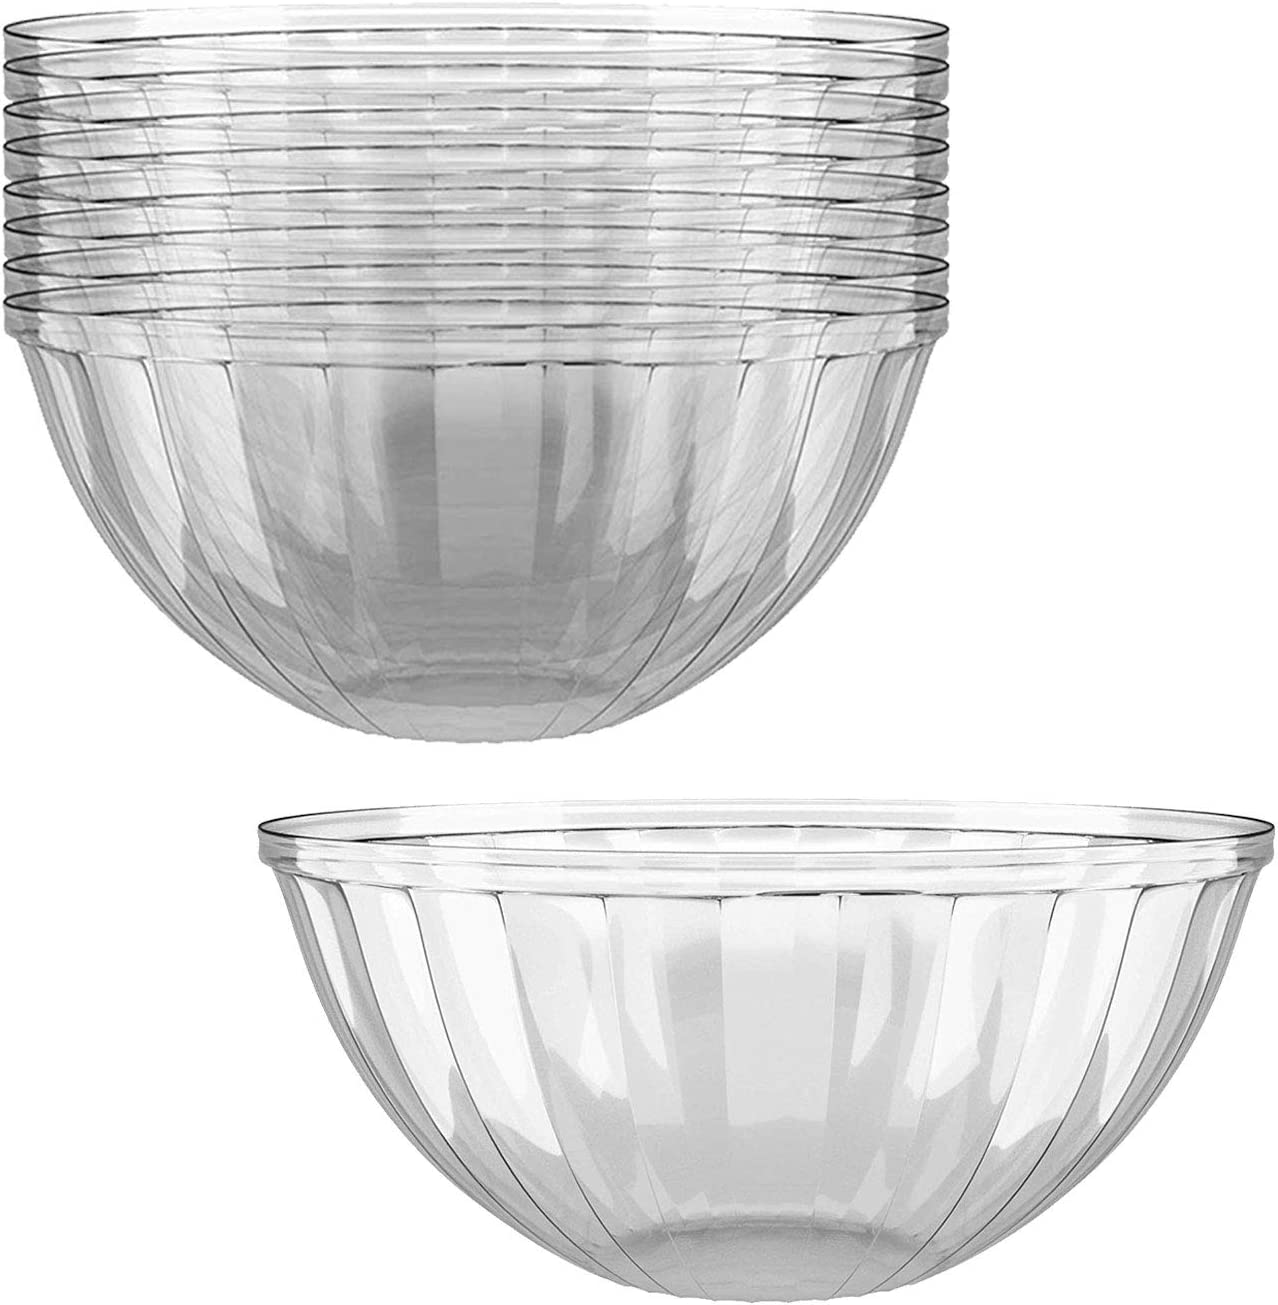 Clear Plastic Serving Bowls Sales of SALE items from new works for Parties Round Oz. Max 88% OFF 12 48 Pack